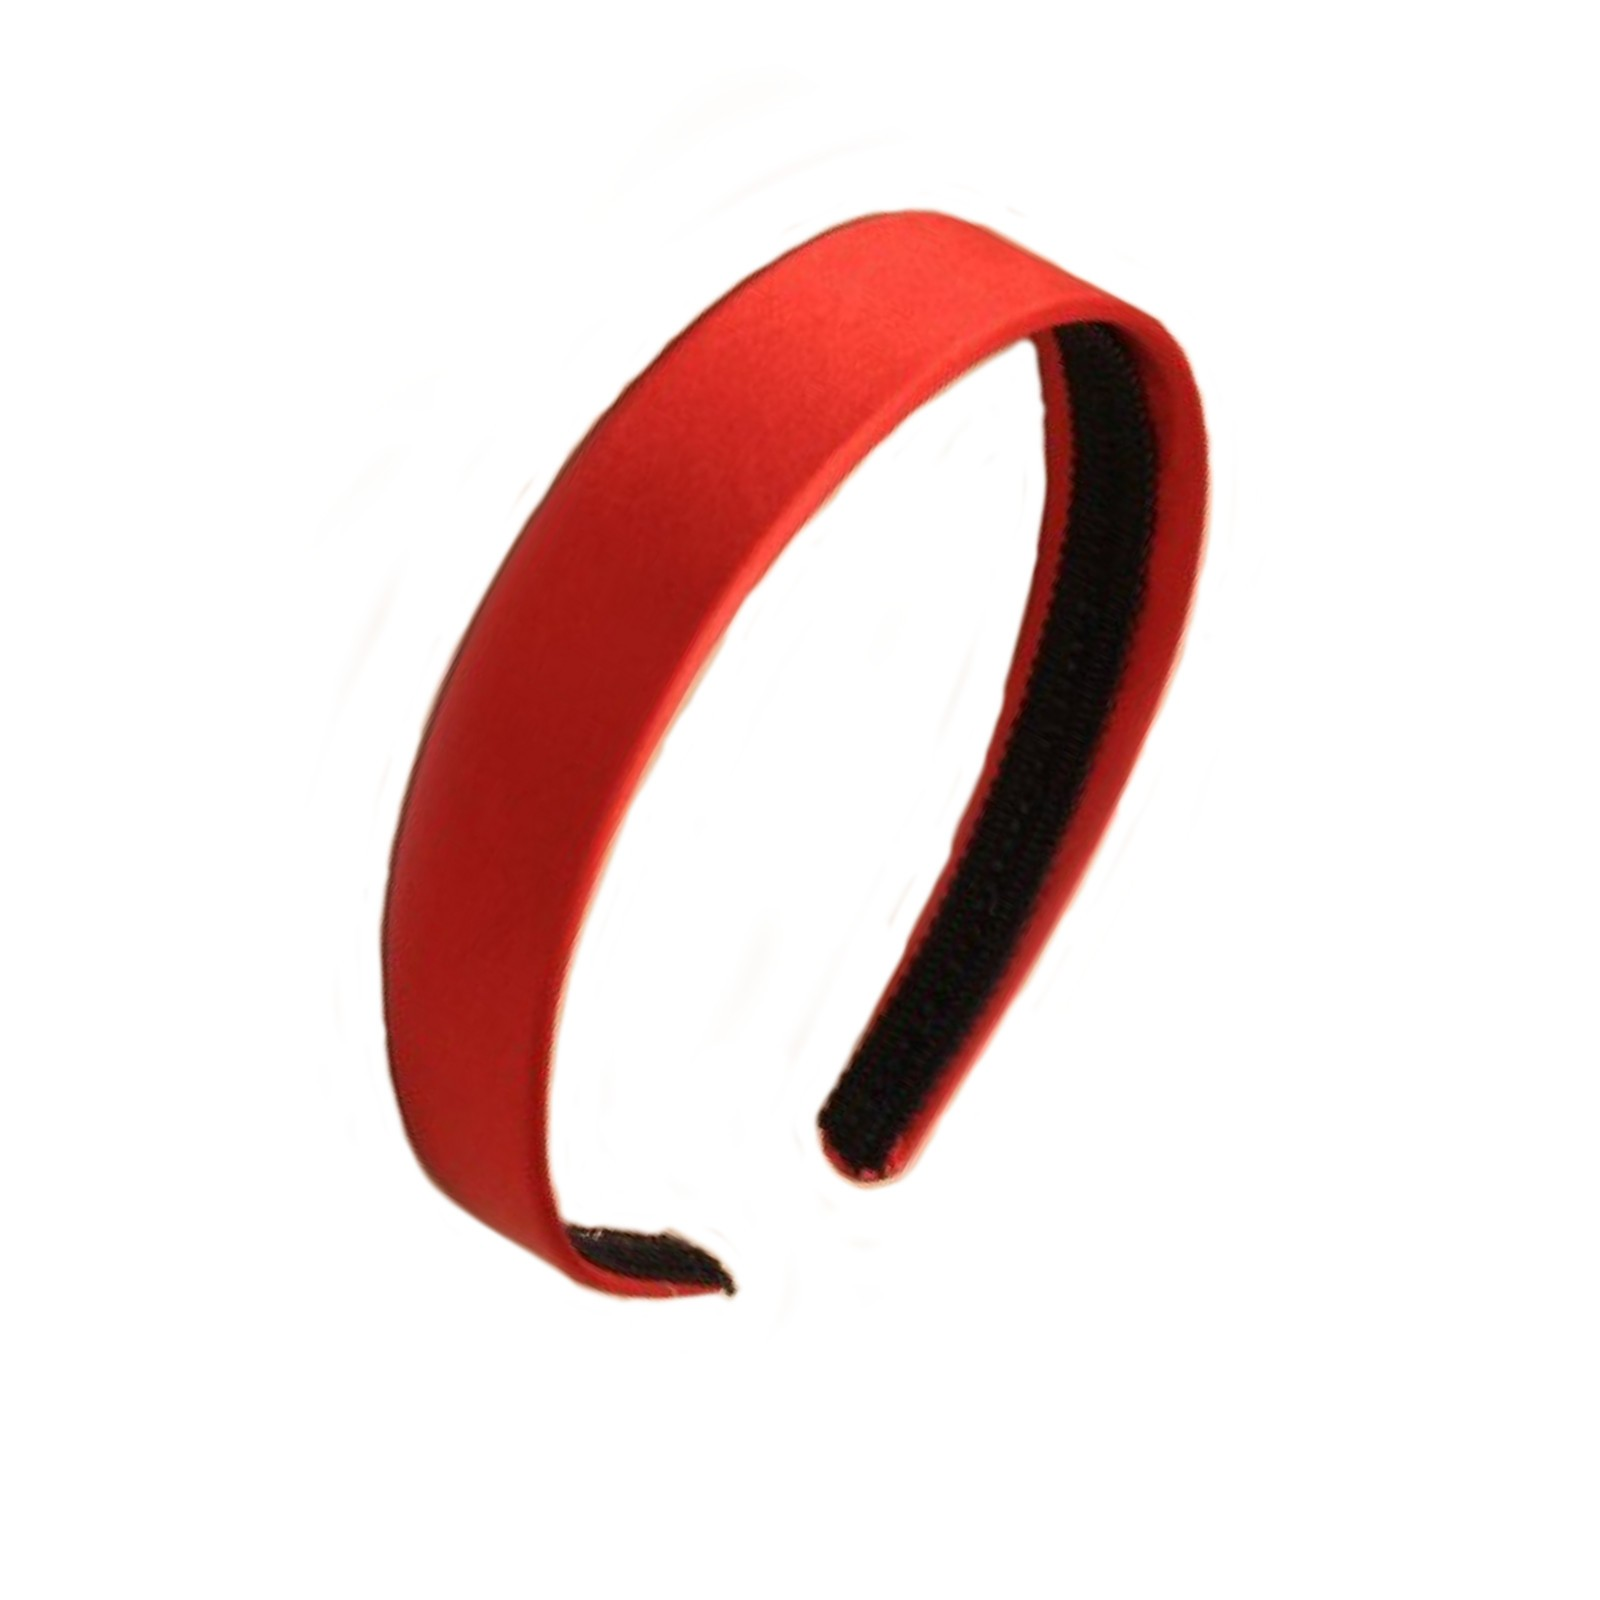 Red aliceband headband